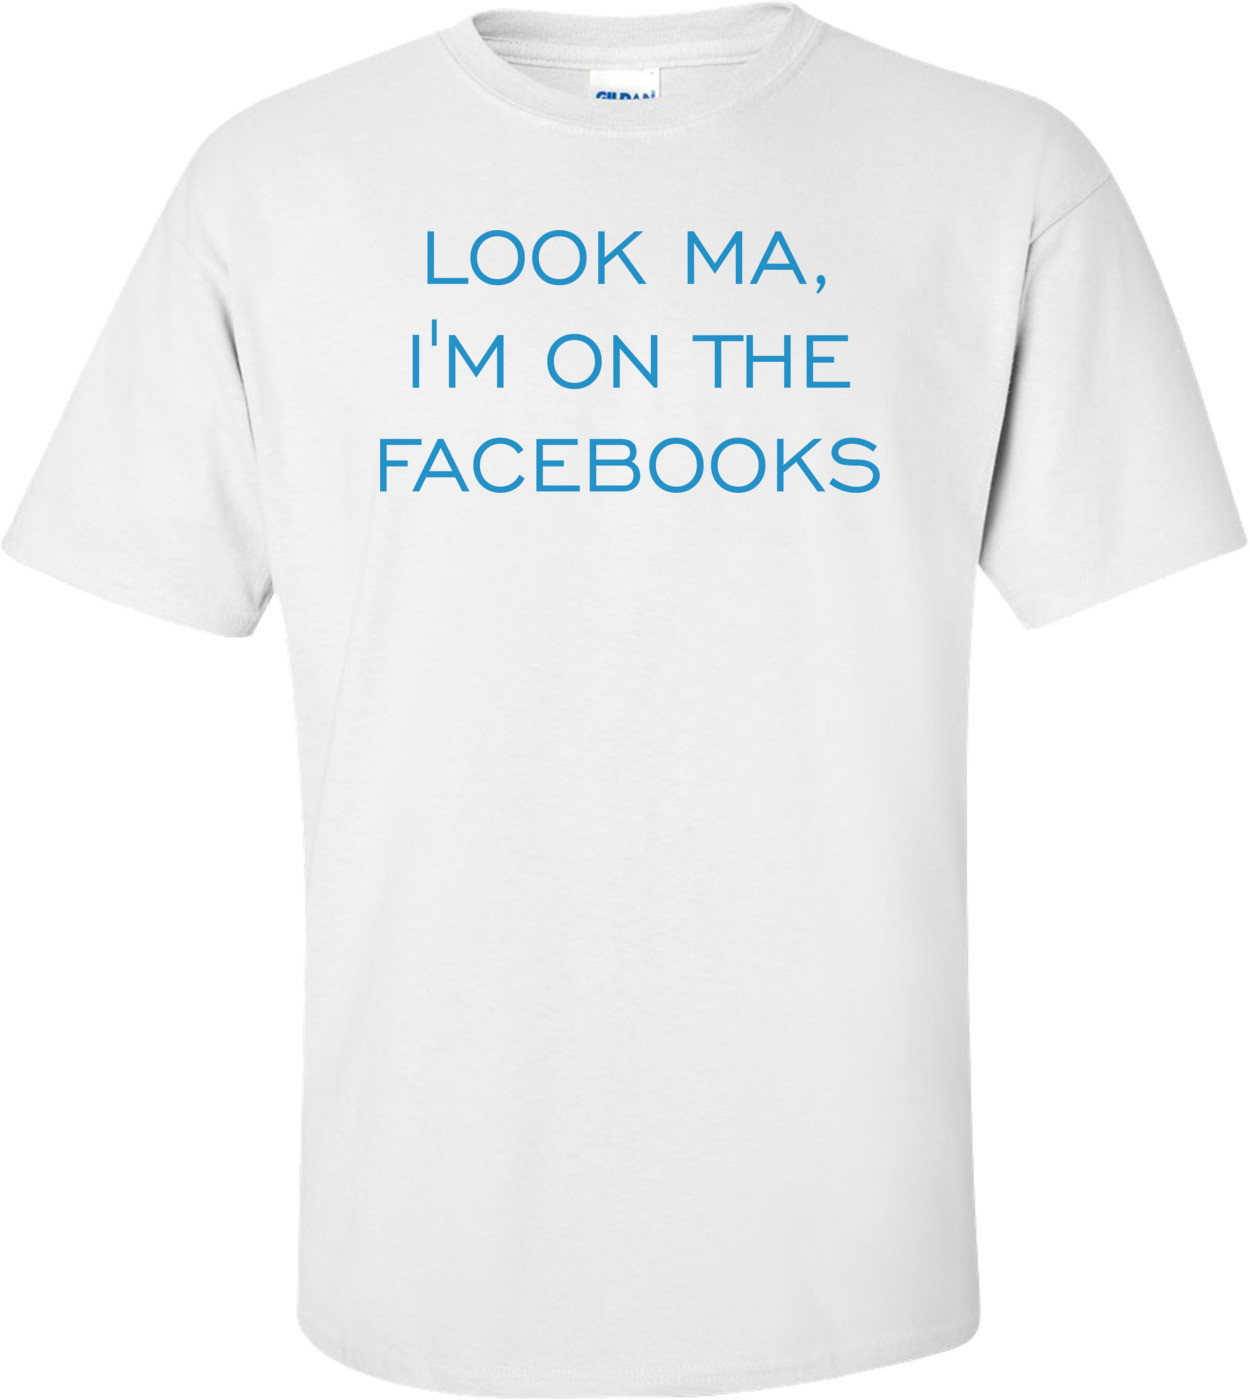 LOOK MA, I'M ON THE FACEBOOKS Shirt